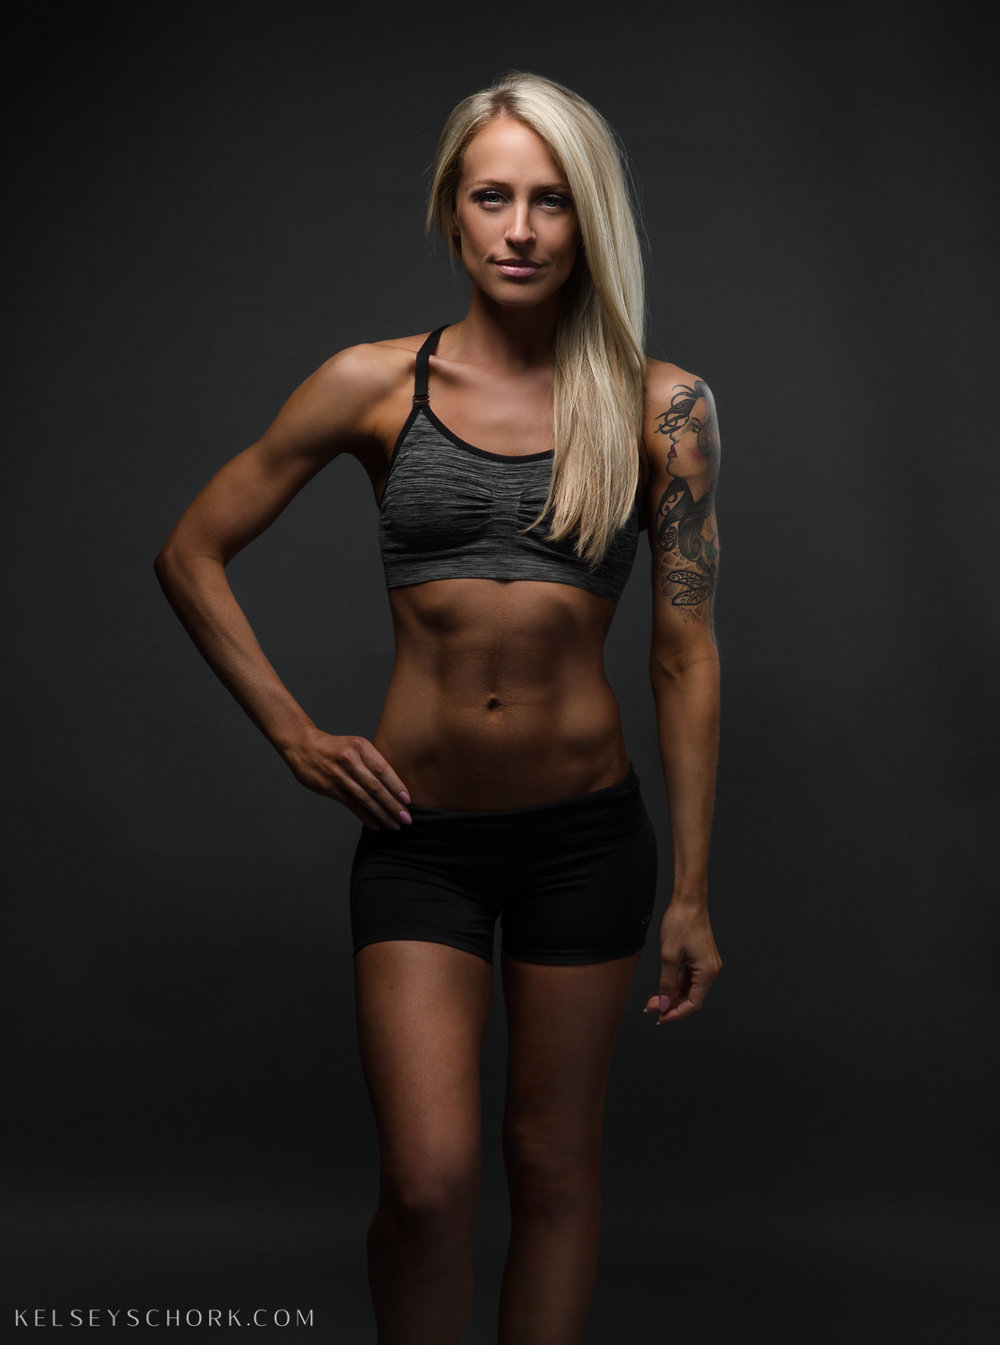 Anna_fitness_wonder_vegan_buffalo-6.jpg